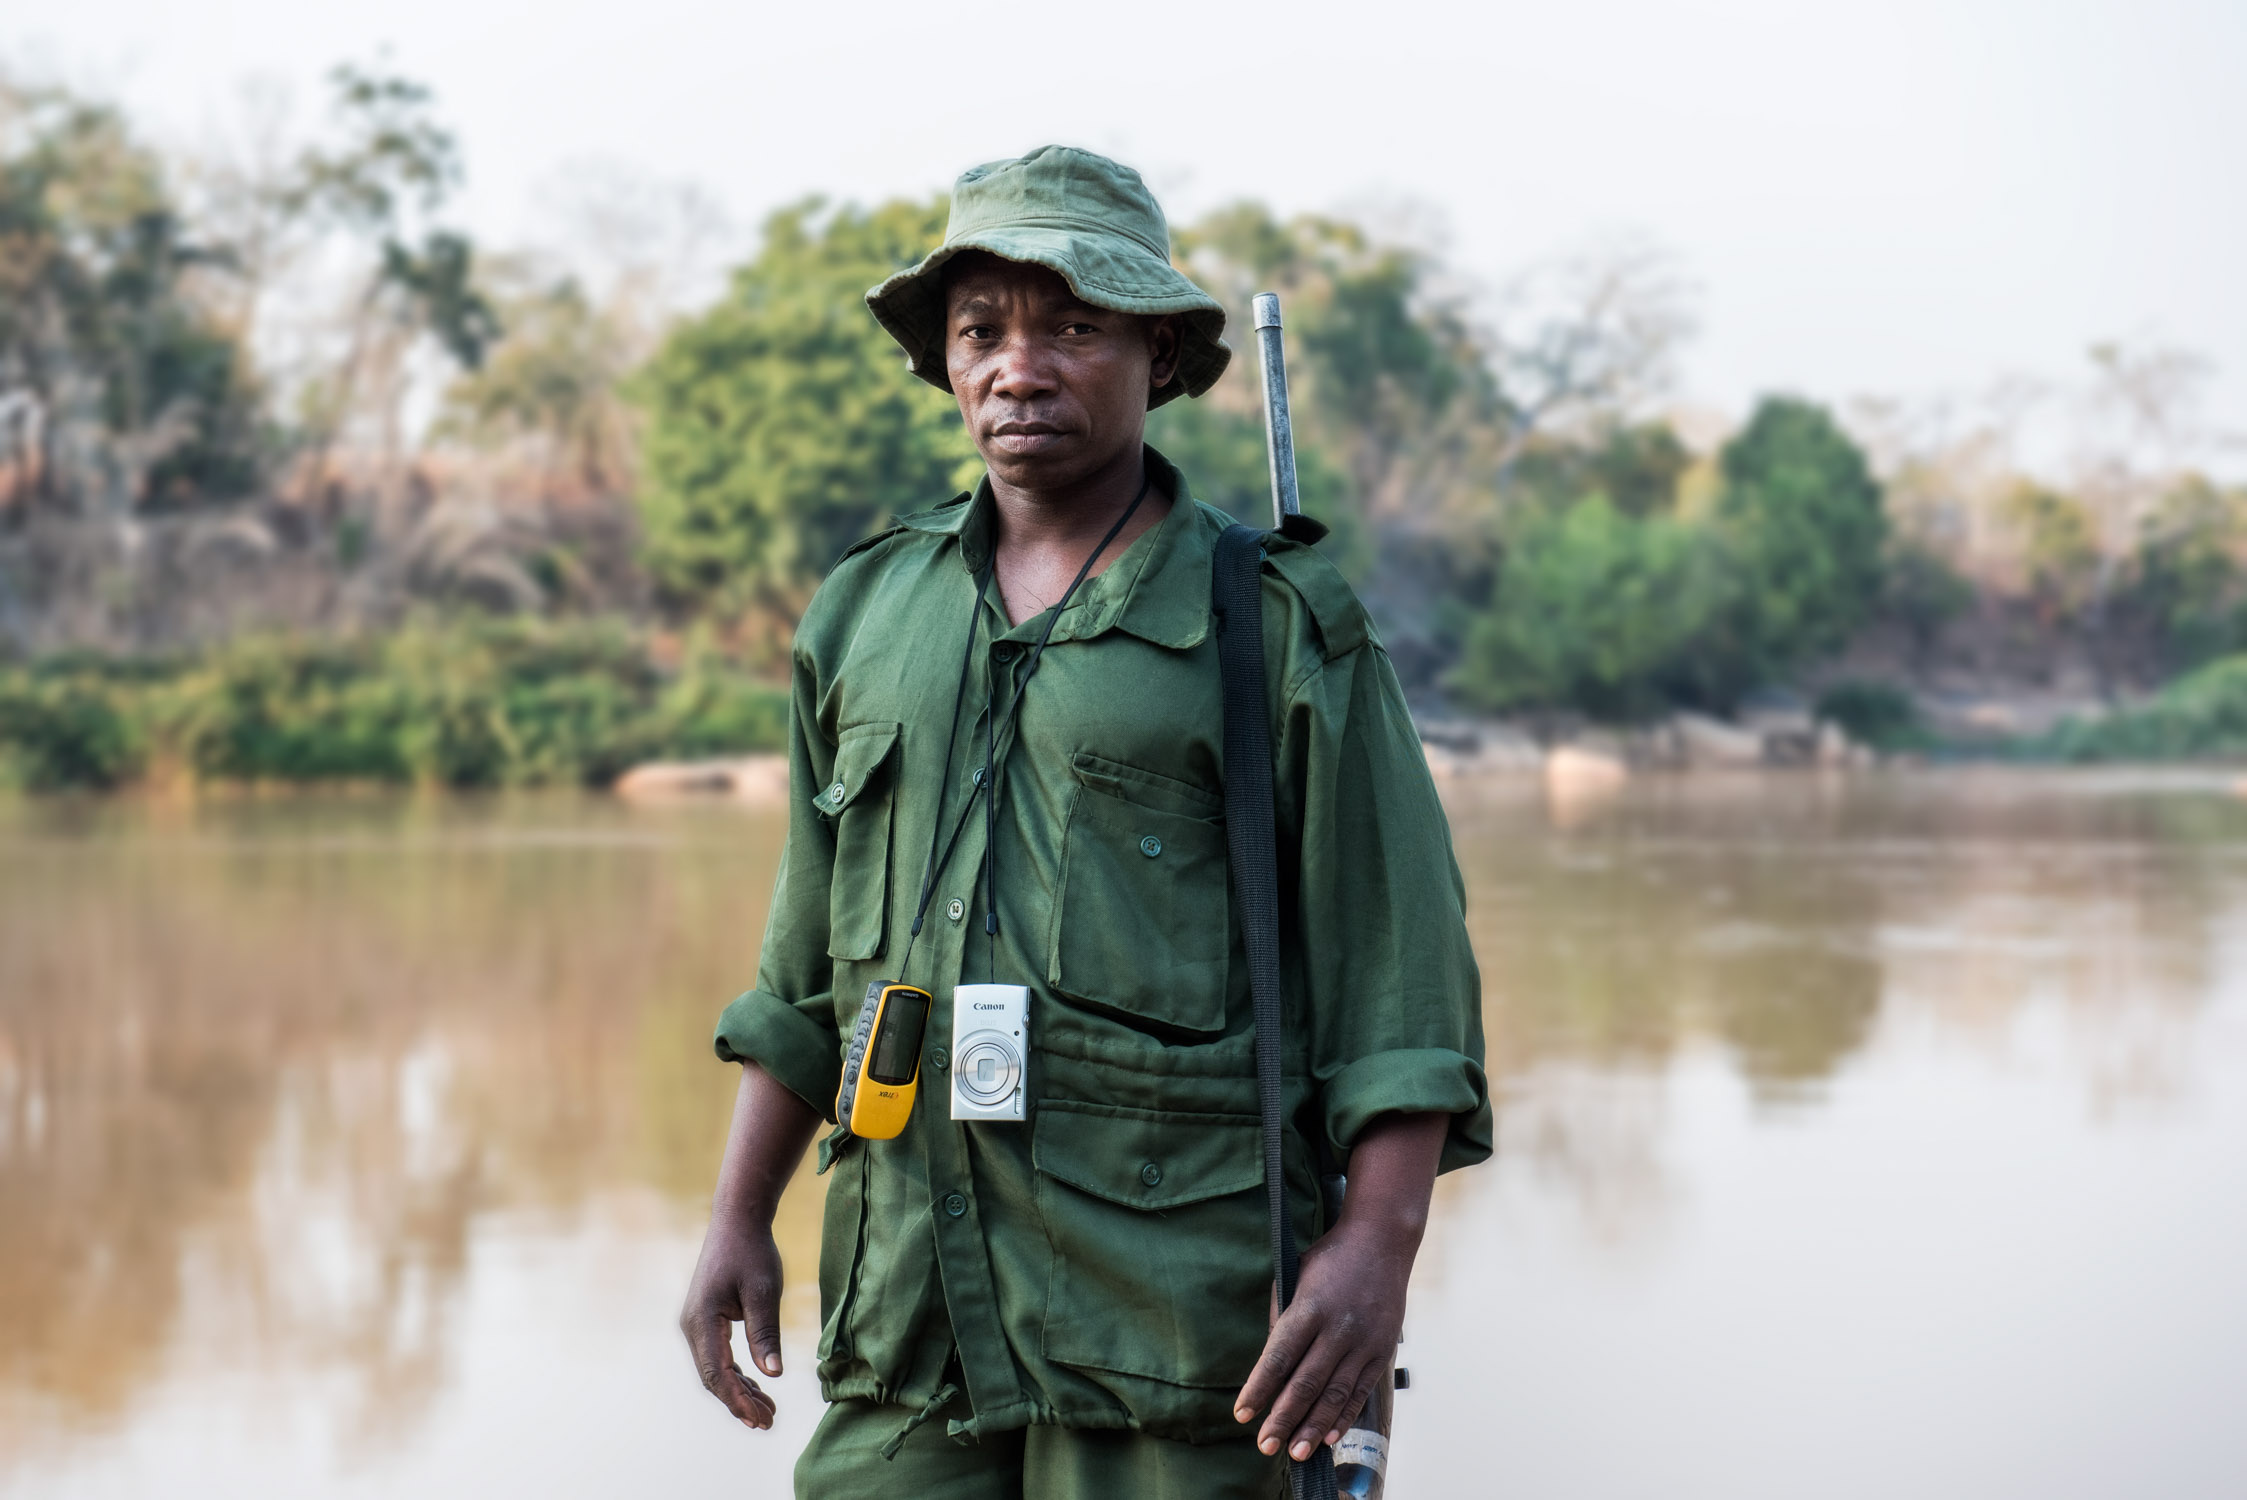 A Village Game Scout on monitoring patrol at Ruvuma river, on the border to neighboring Mozambique.